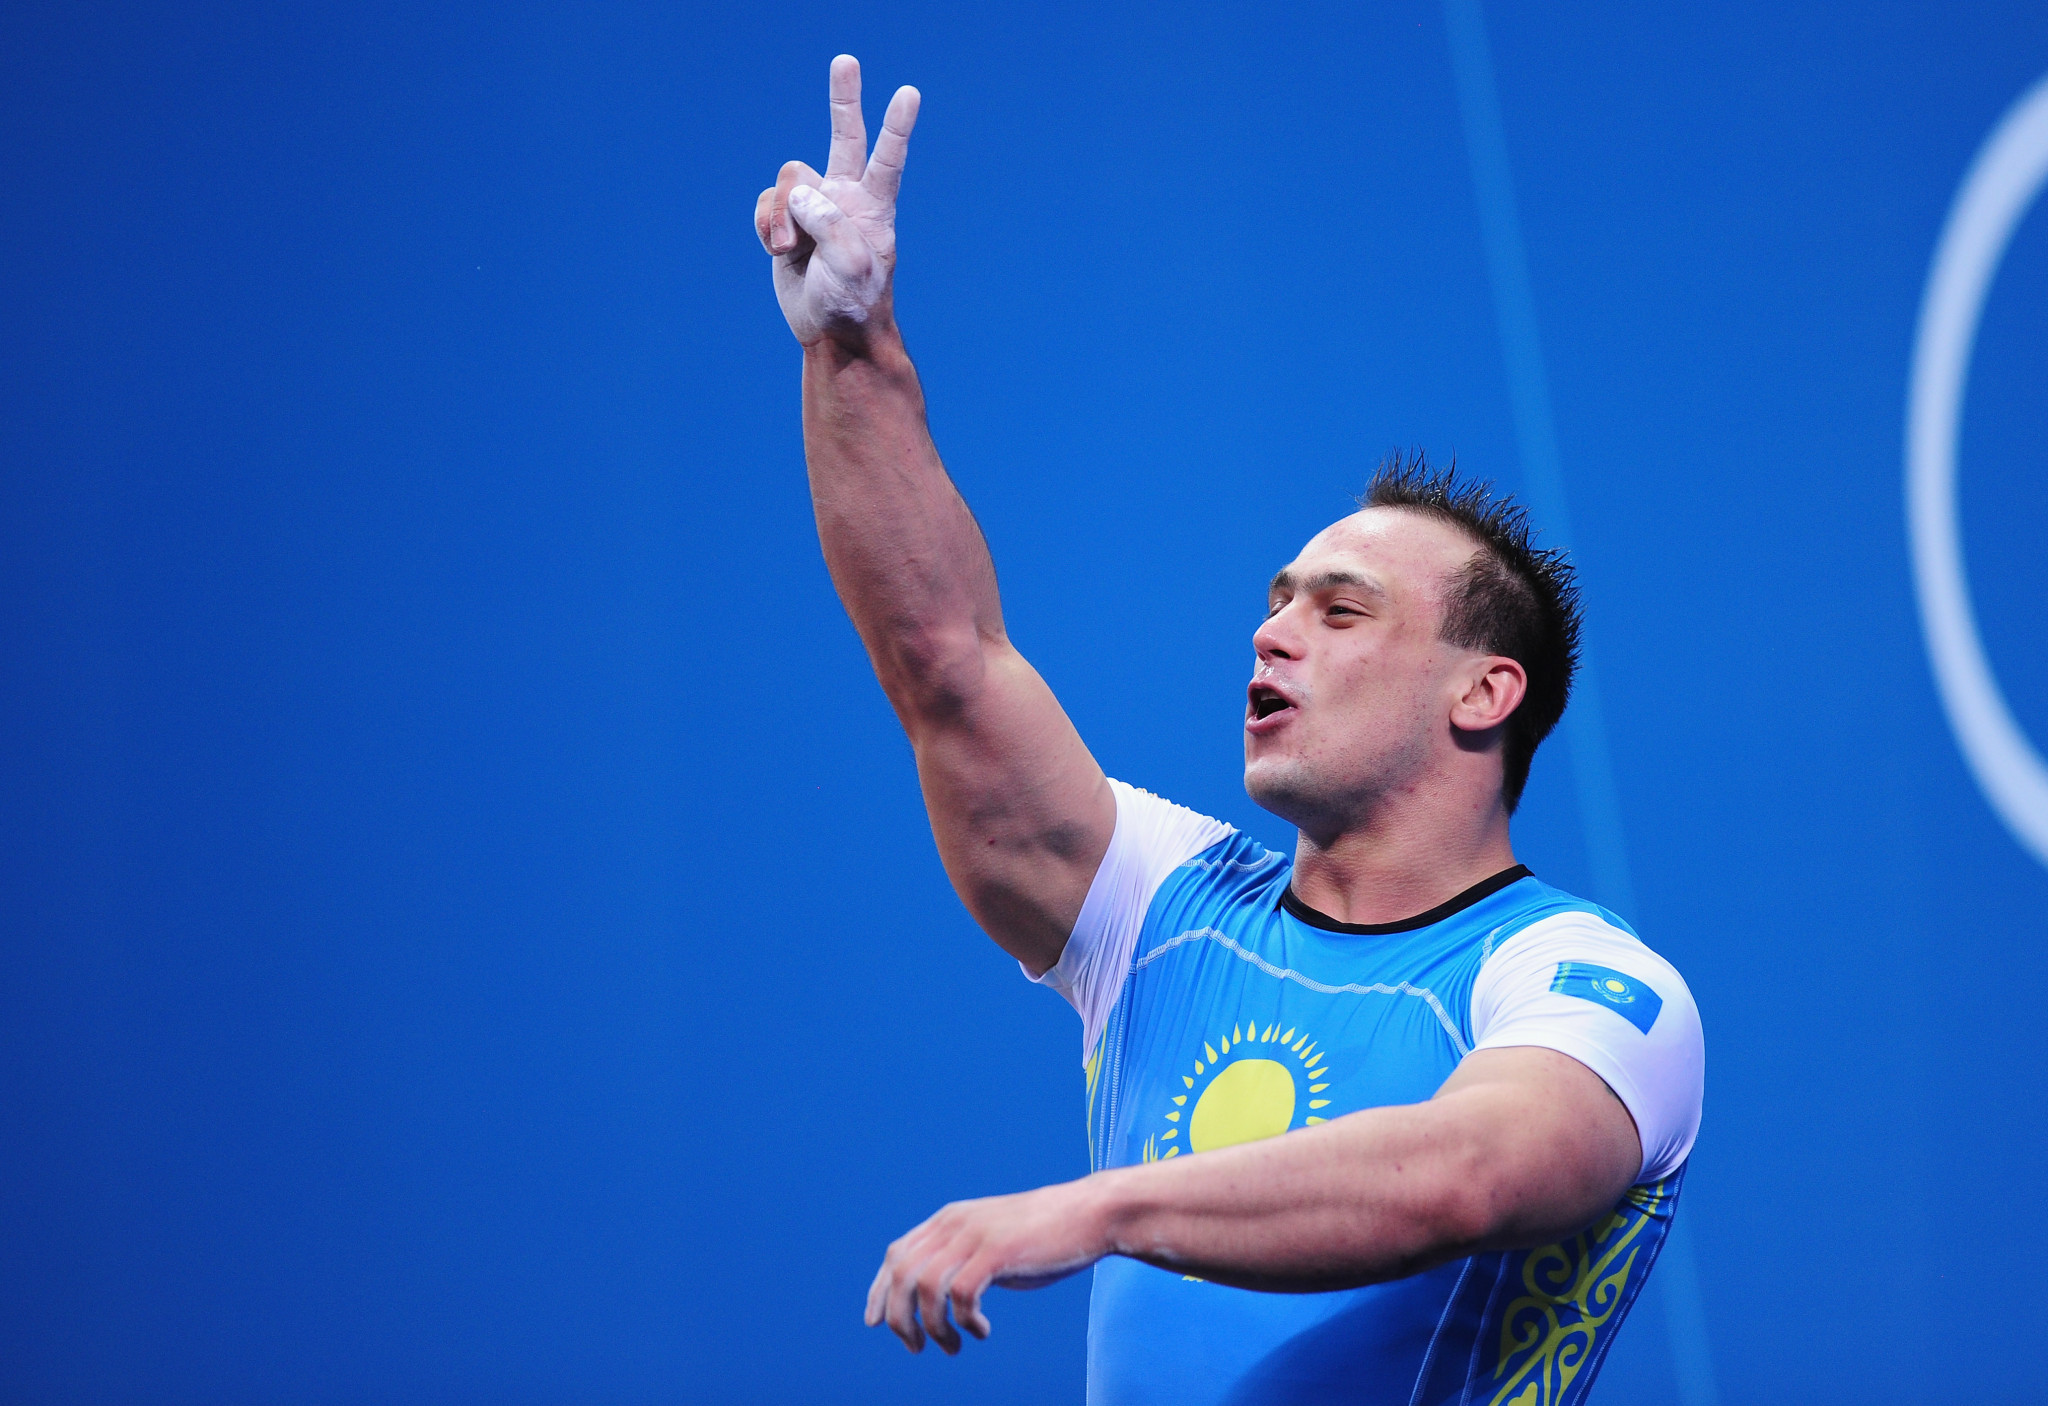 Ilya Ilyin, stripped of two Olympic gold medals, will be in Ashgabat ©Getty Images